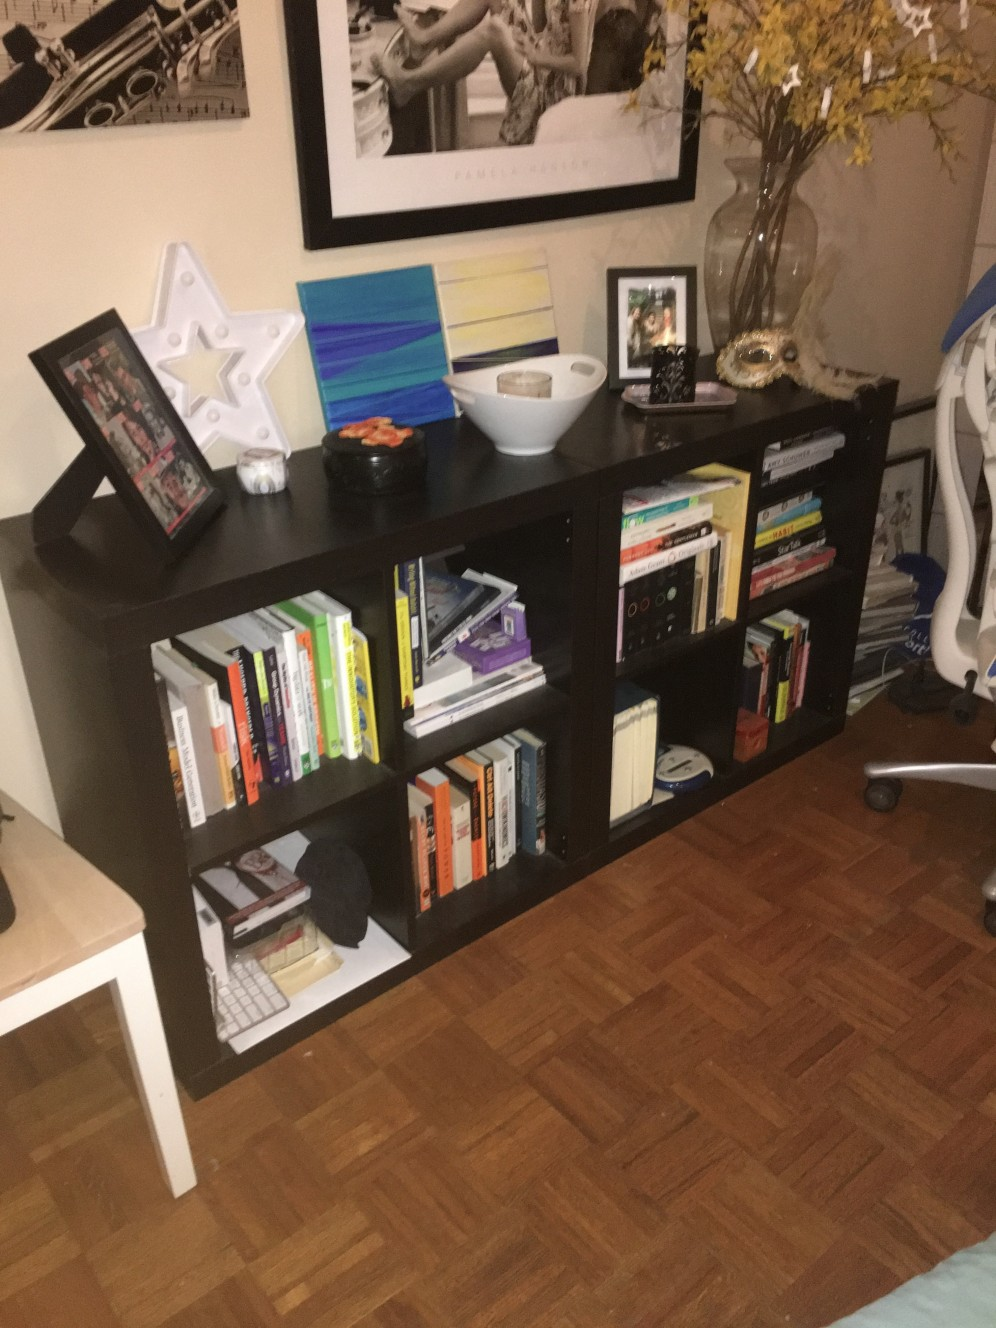 Our artsy book collection